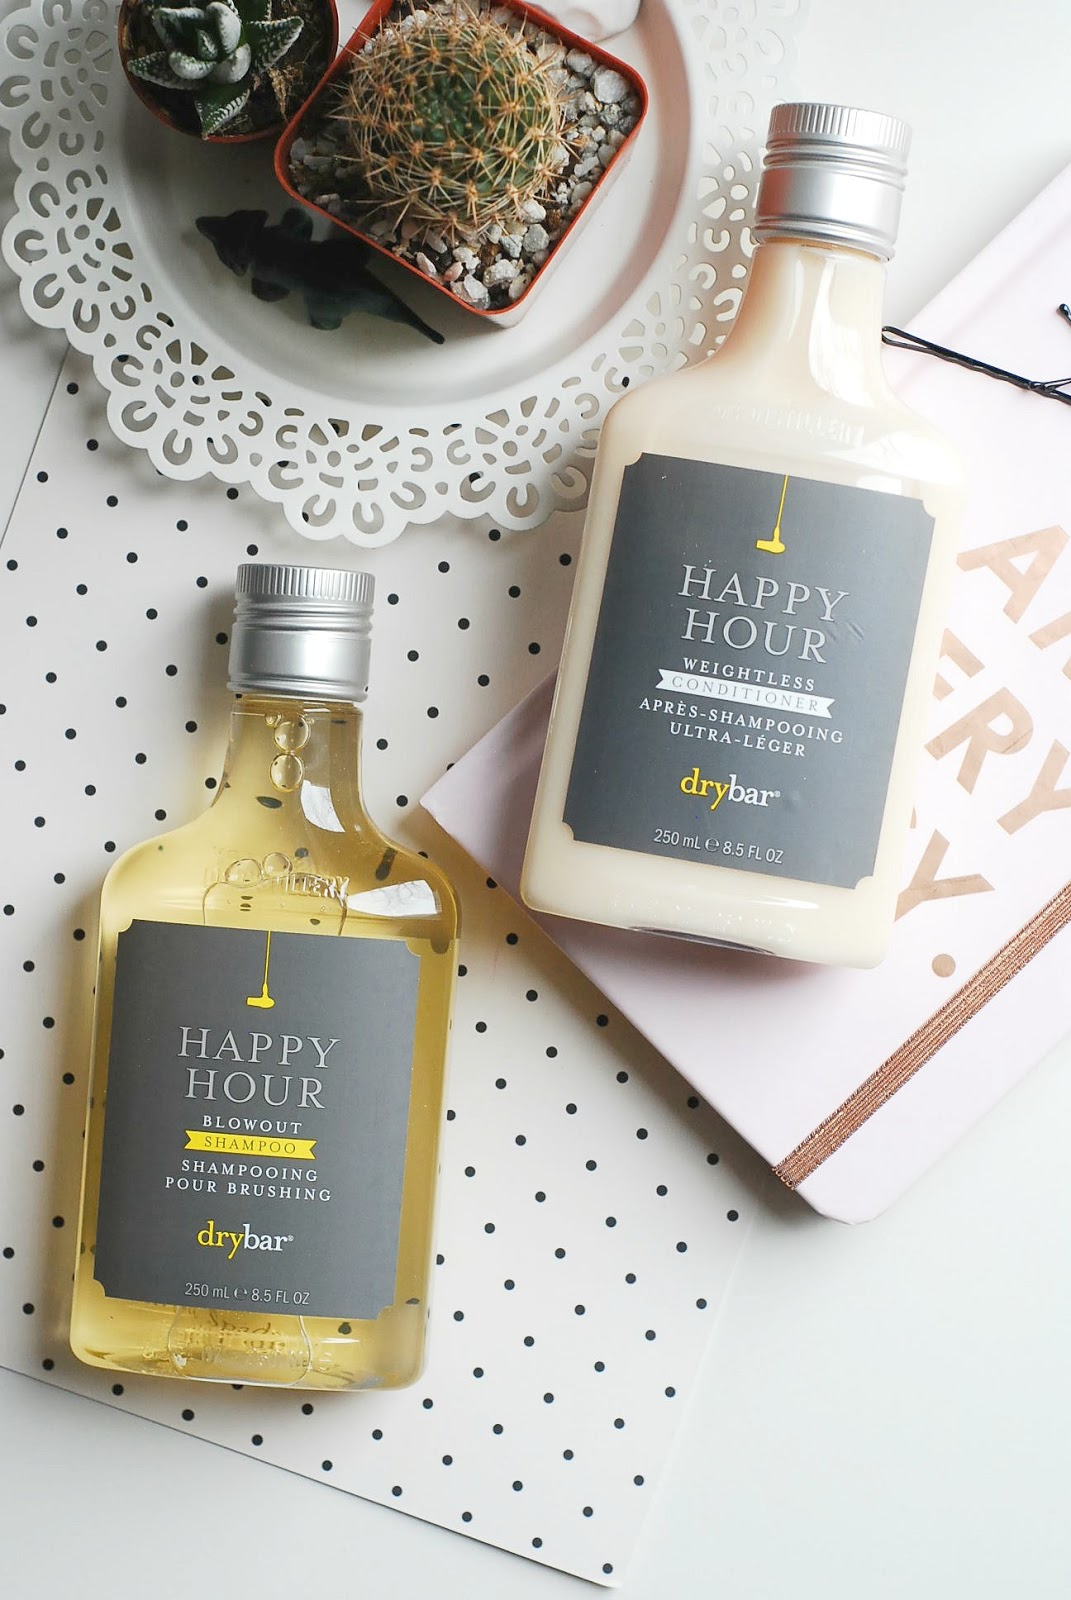 Drybar Happy Hour shampoo and conditioner review